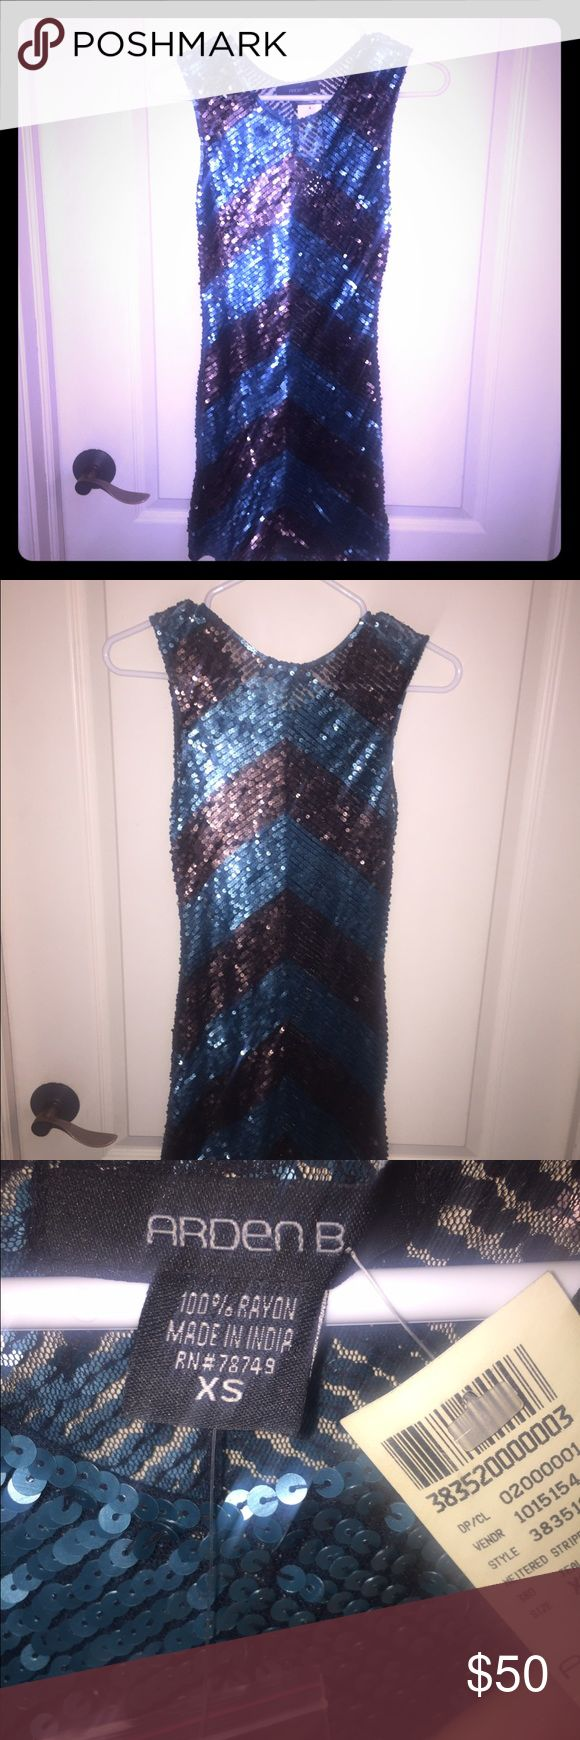 Sequins dress NWT! Gorgeous blue and brown sequins dress. Arden B Dresses Mini